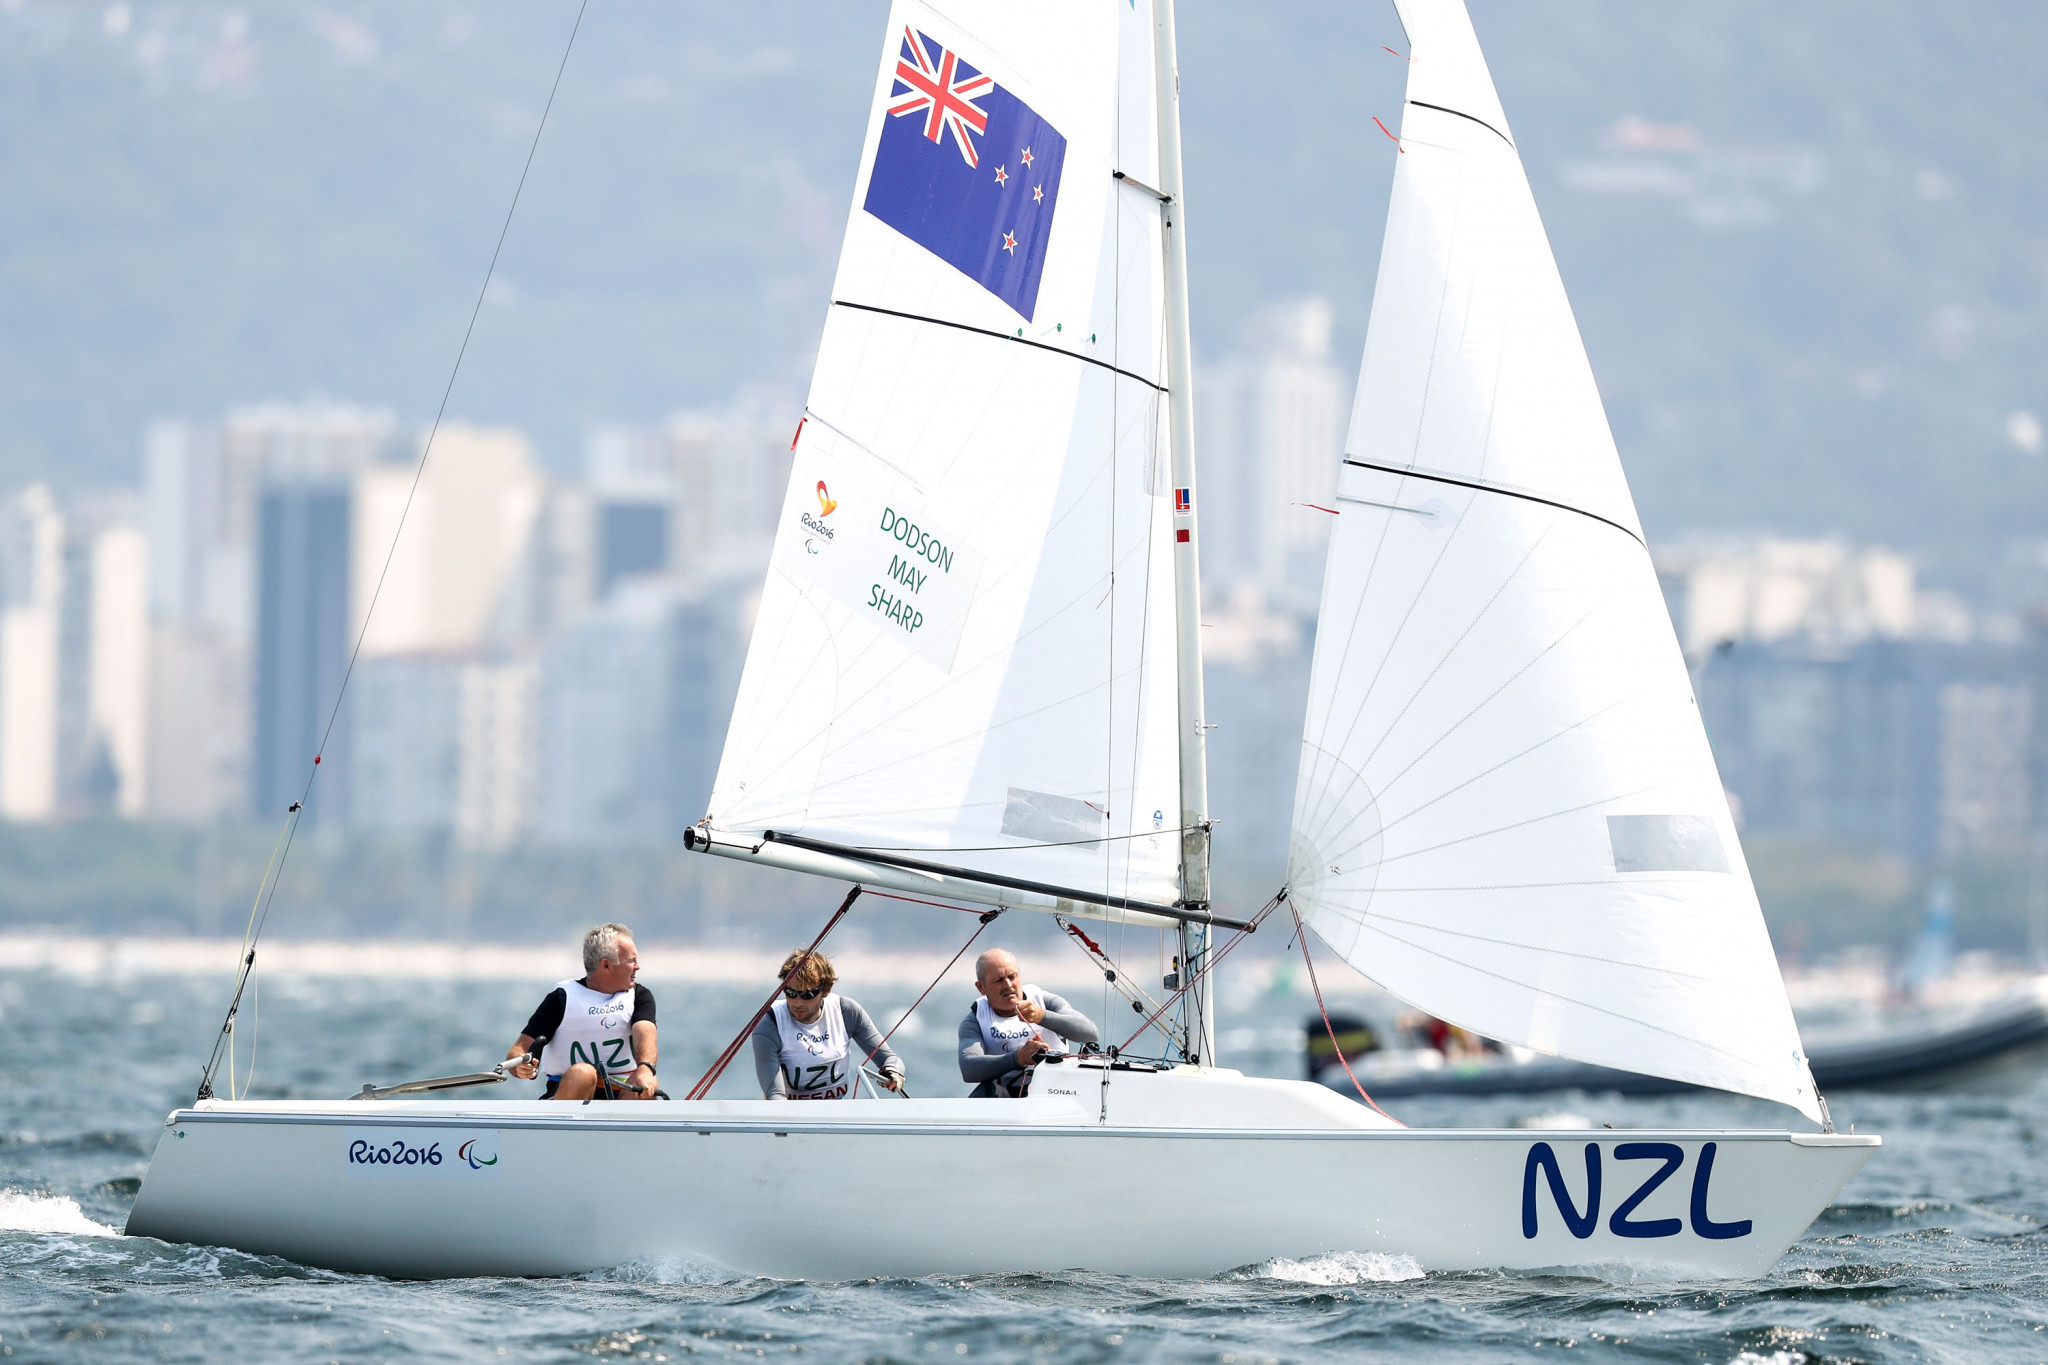 Sailing is among the sports to progress to the next stage of the Paris 2024 process ©Getty Images